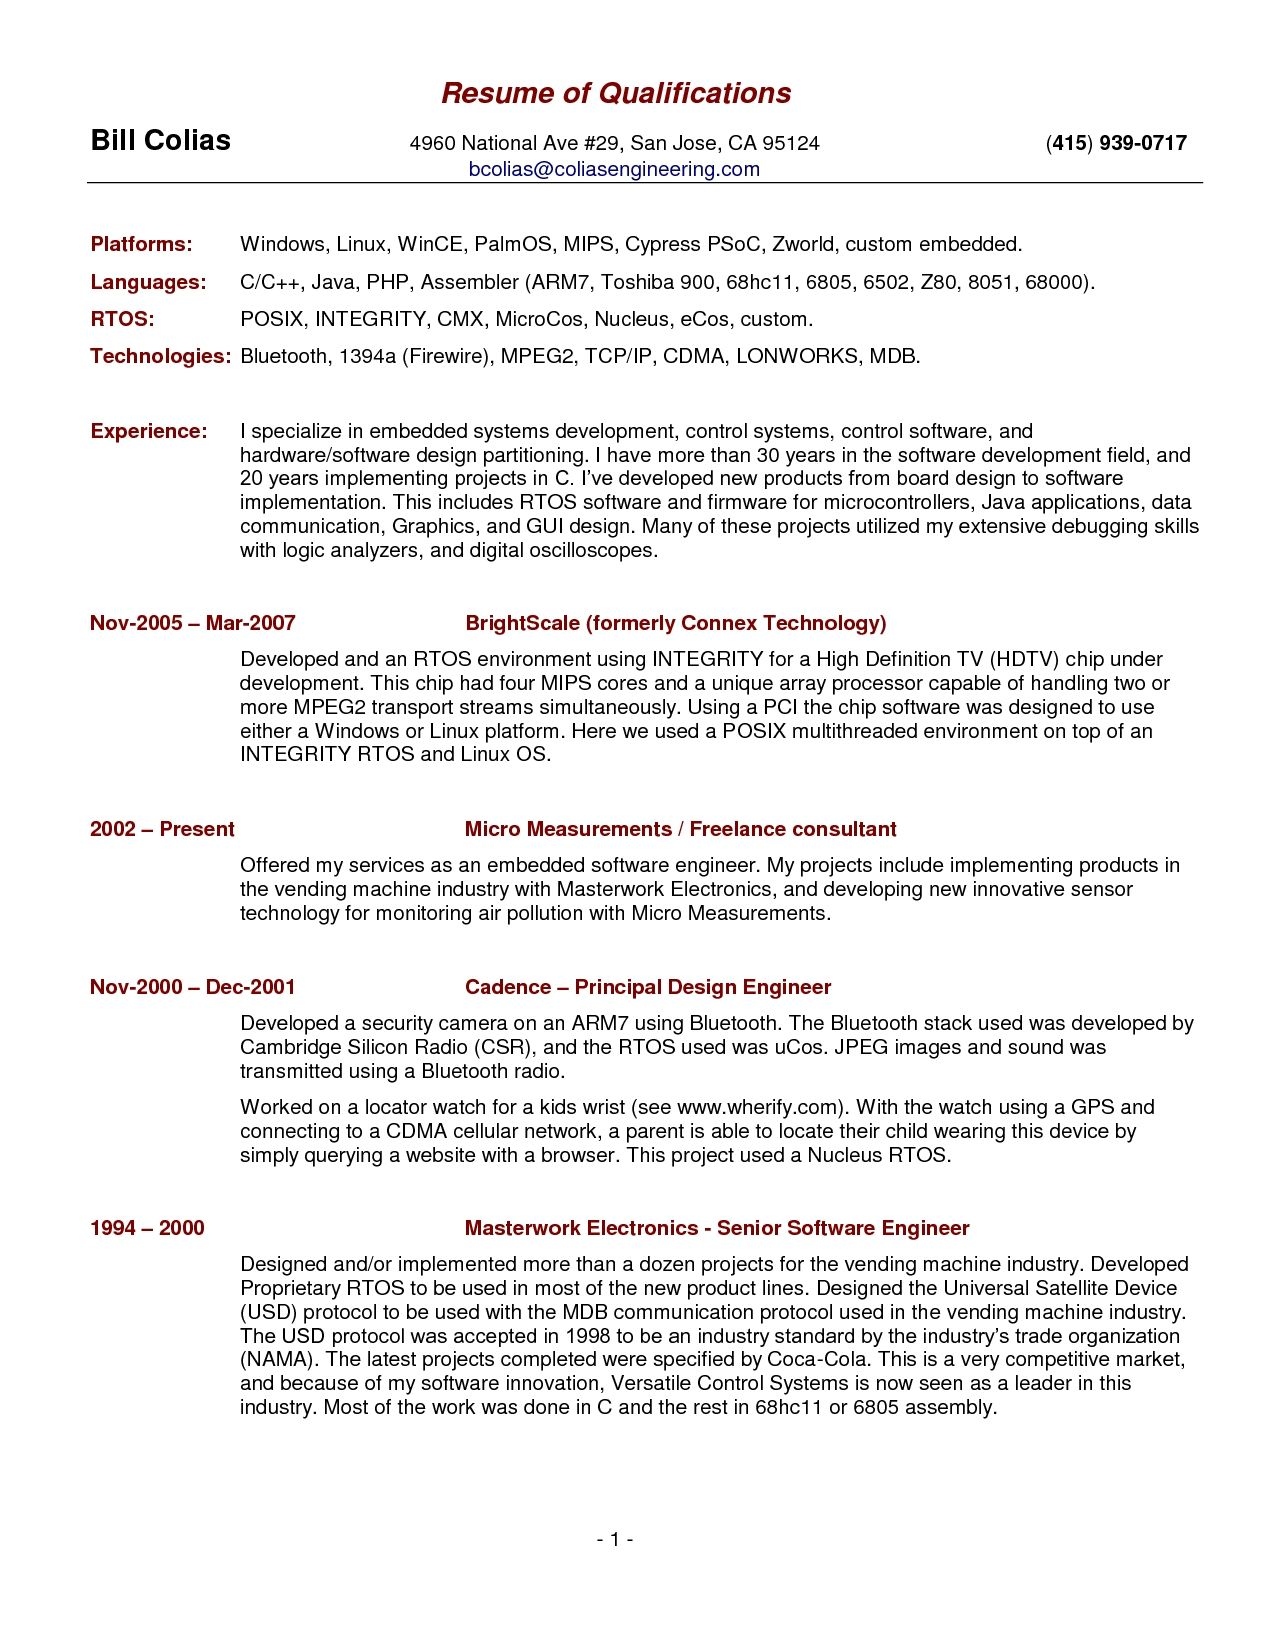 The Most Resume Skills And Qualifications Examples Resume Skills